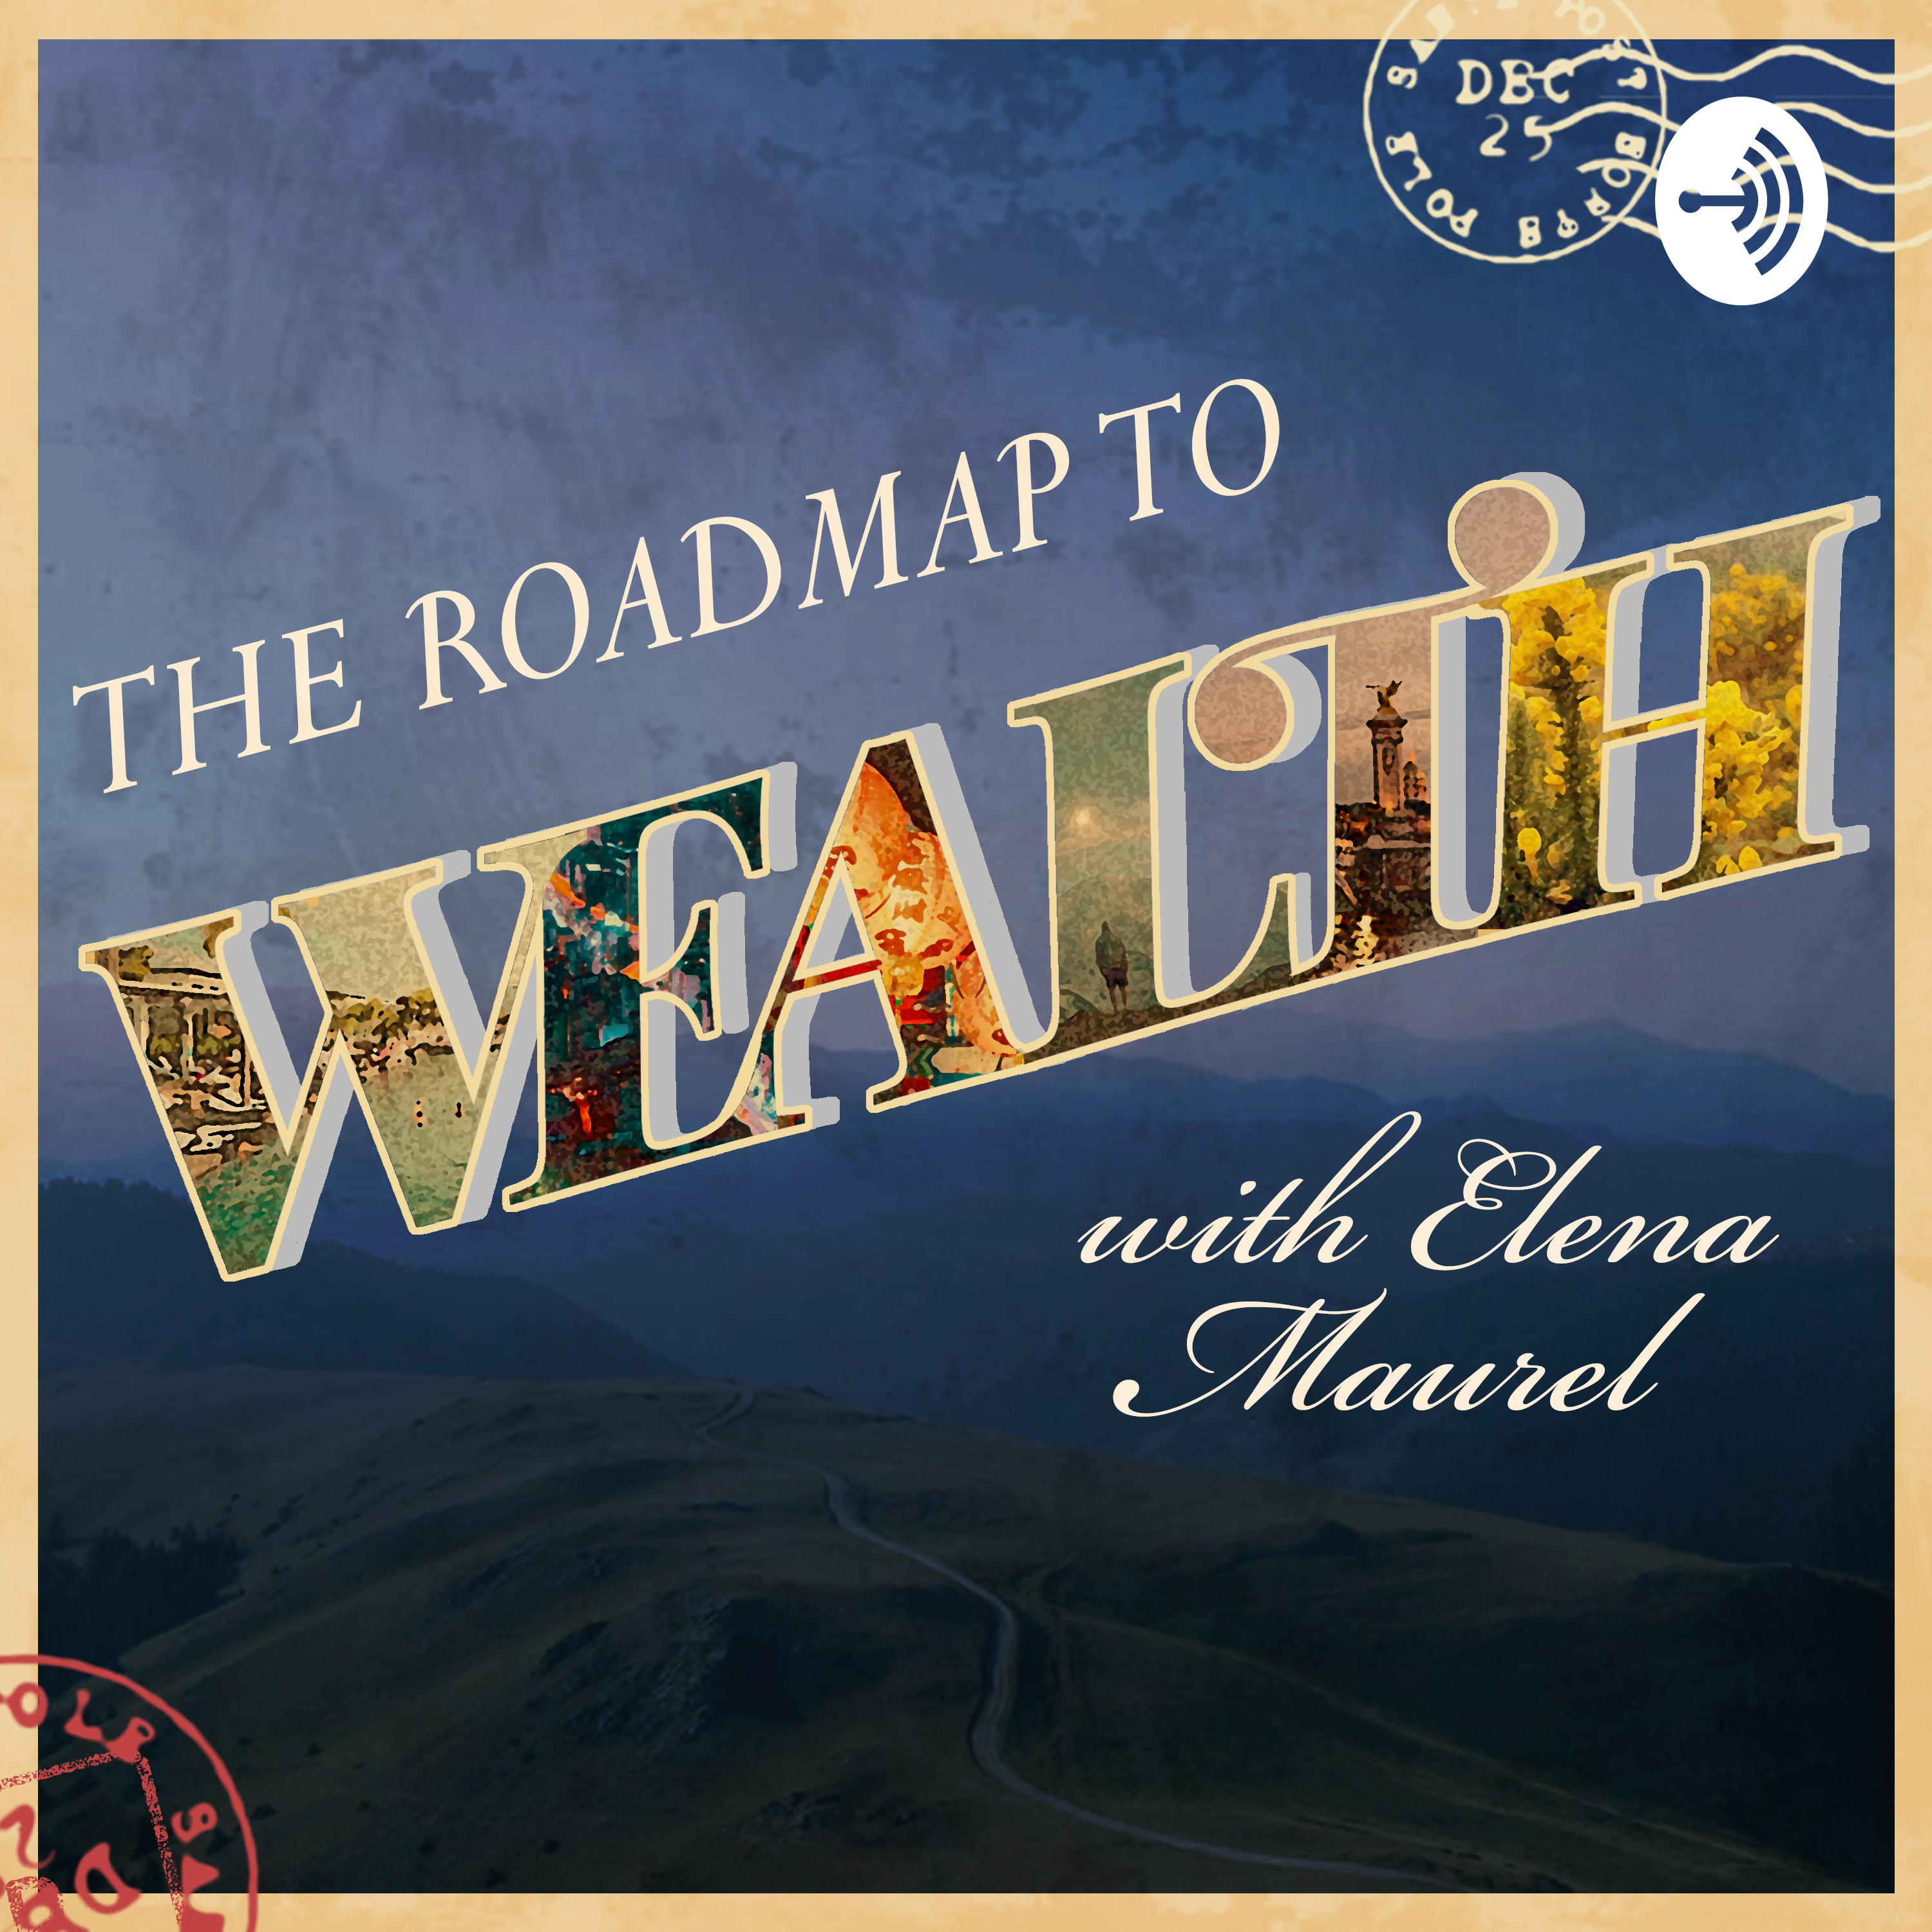 The Roadmap to Wealth Show with Elena Maurel